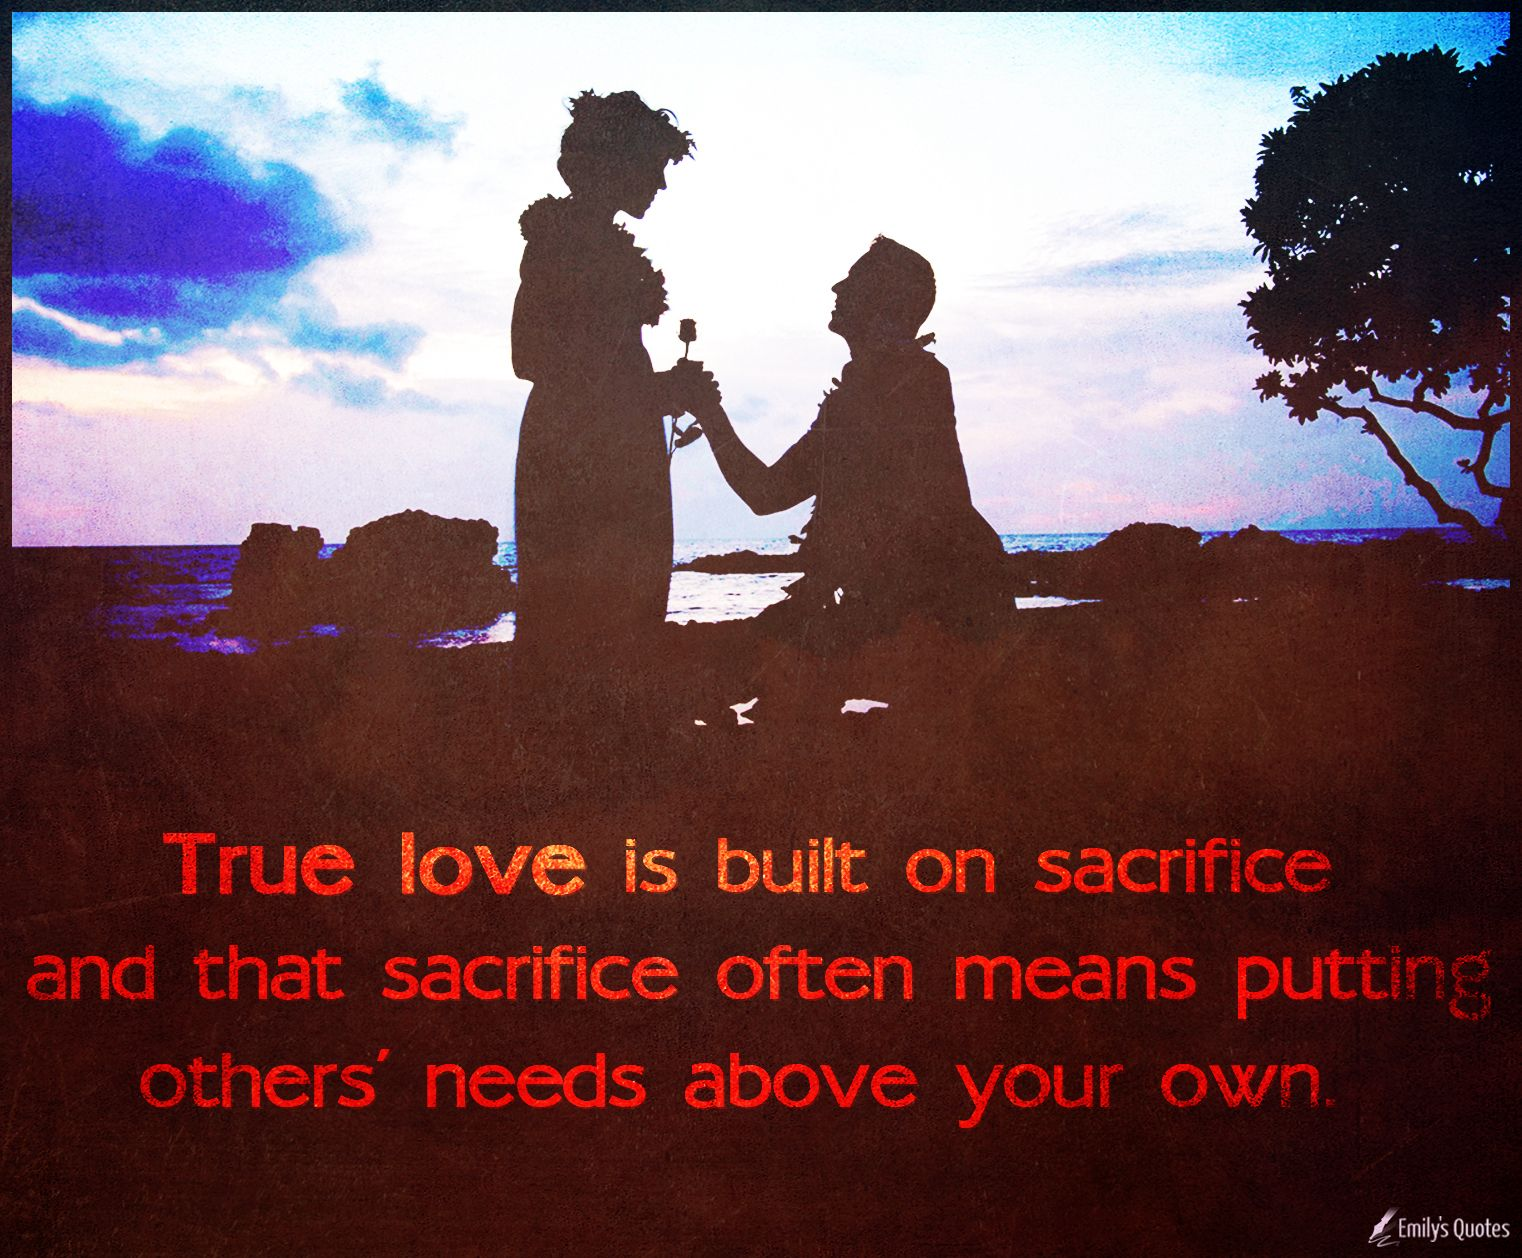 True Love Is Built On Sacrifice And That Sacrifice Often Means Putting Others Popular Inspirational Quotes At Emilysquotes Sacrifice Love Sacrifice Quotes Inspirational Quotes With Images